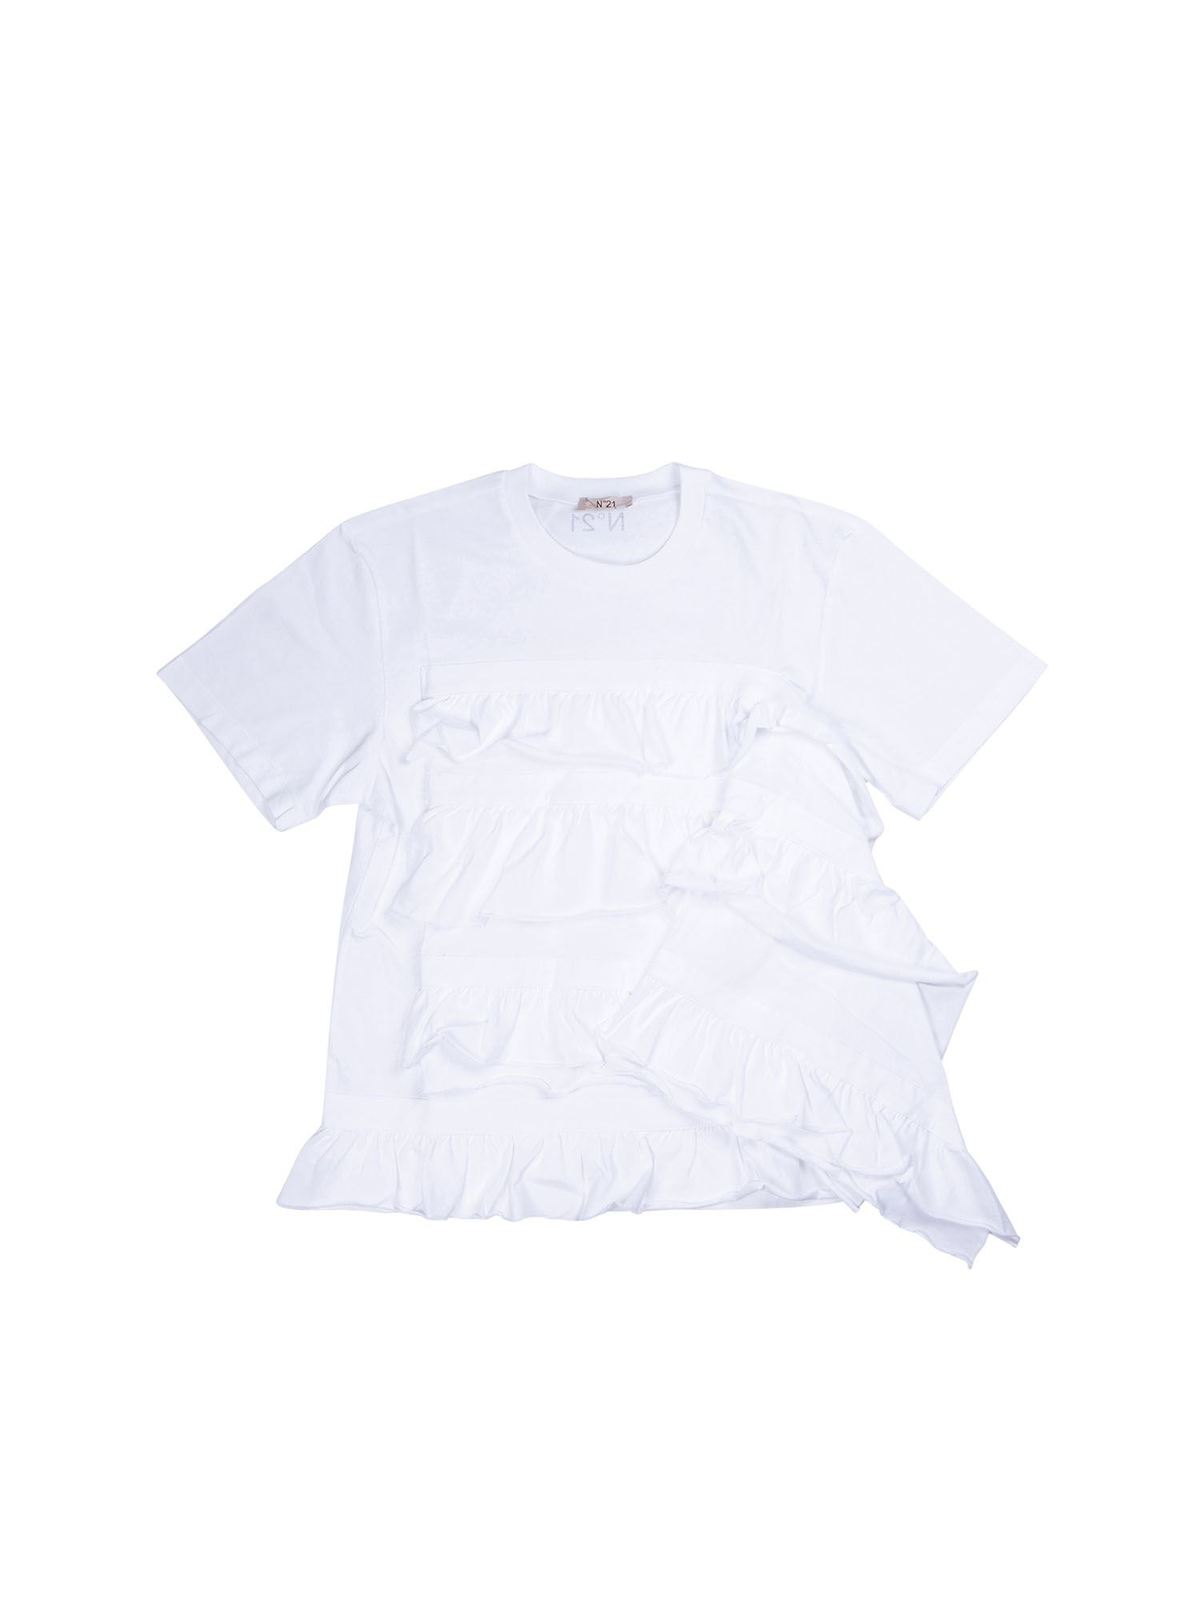 N°21 FLOUNCED T-SHIRT IN WHITE